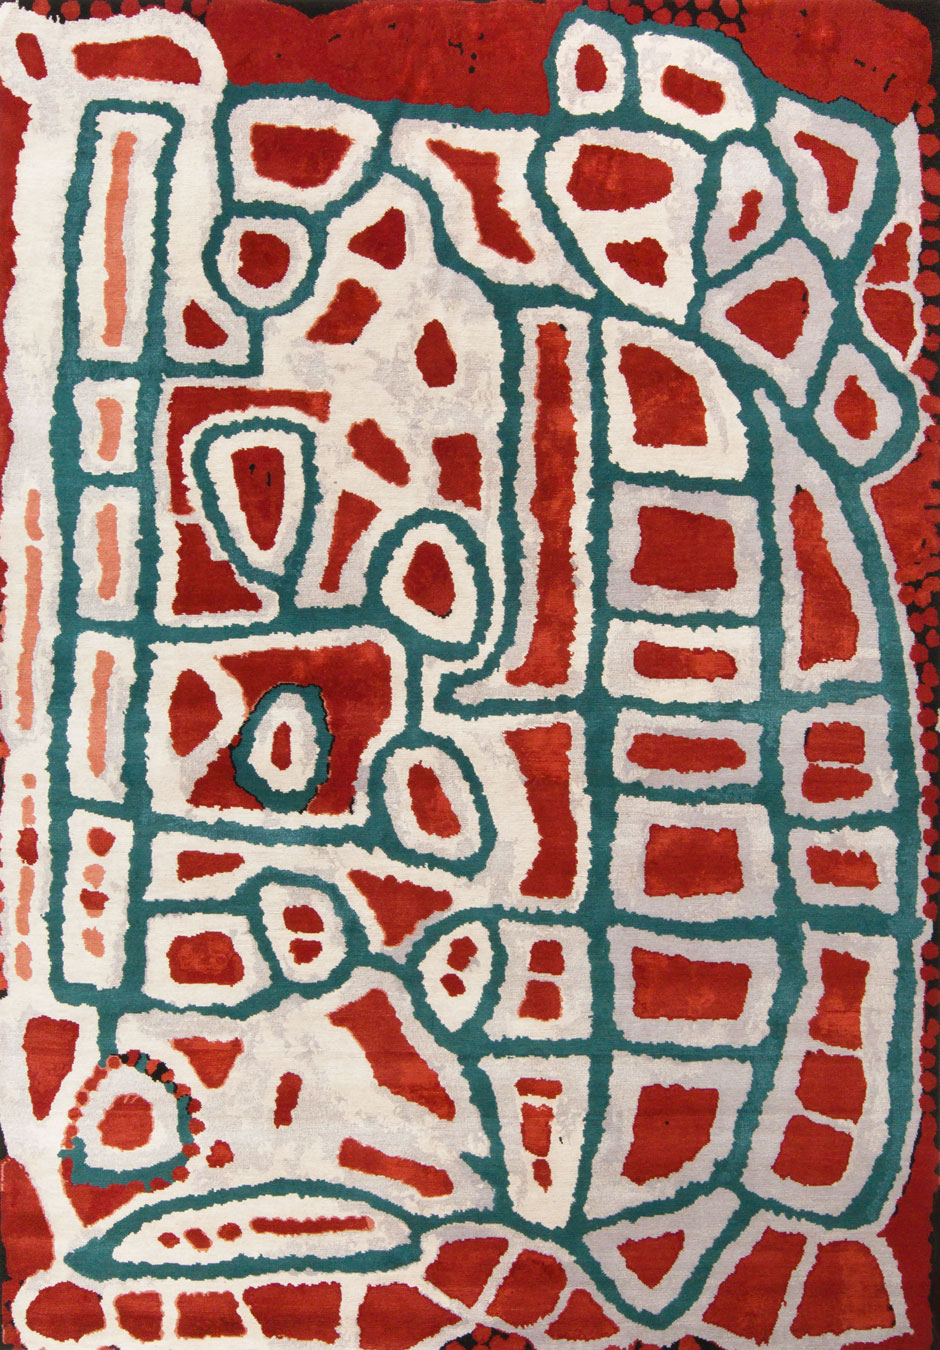 Overhead view of indigenous Lungarung rug in red and green colour